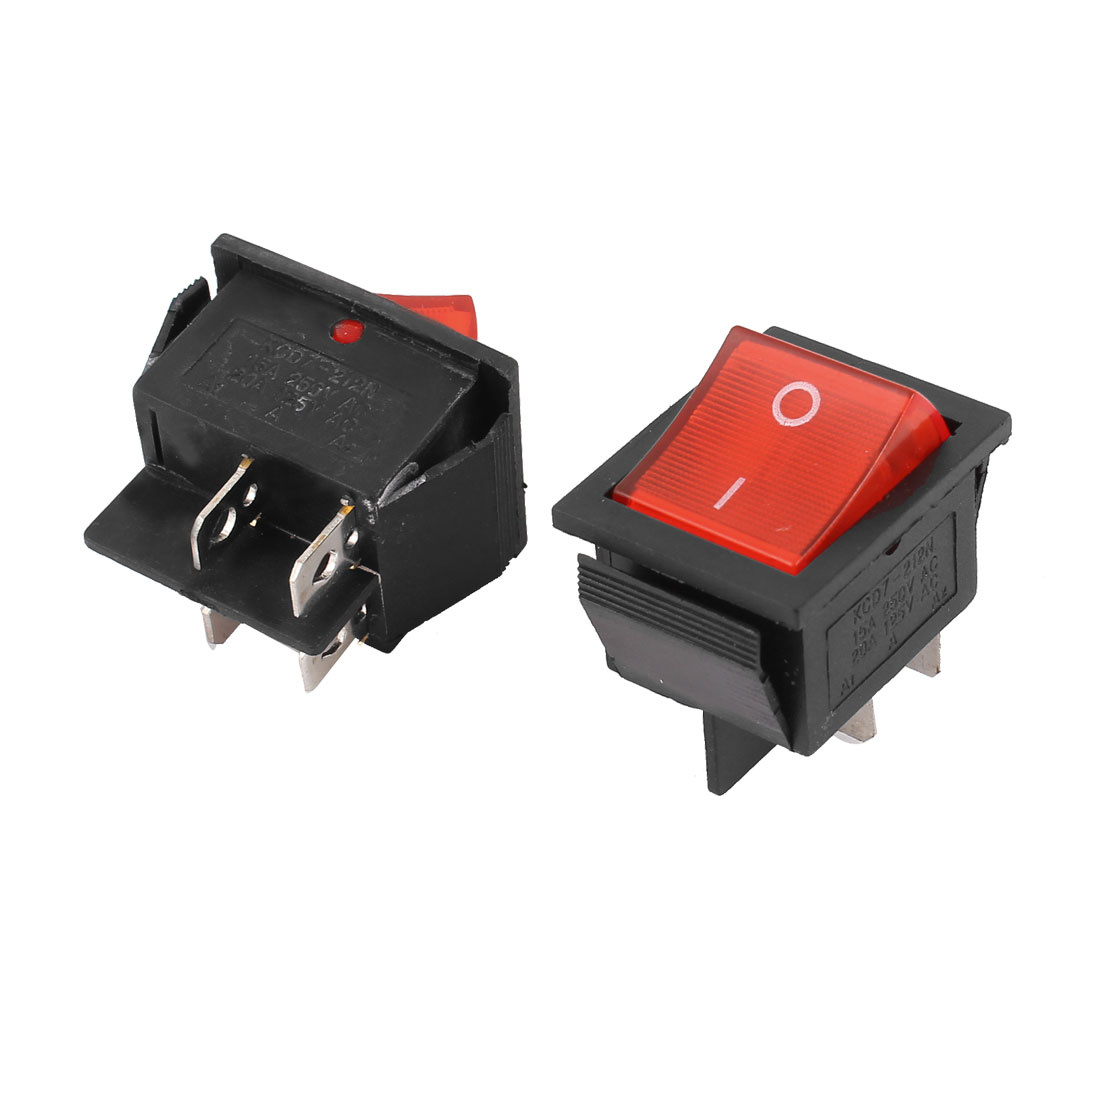 2 PCS On-Off DPST 4Pin Terminals Red Pilot Lamp Rocker Switch AC 250V 15A 125V 20A